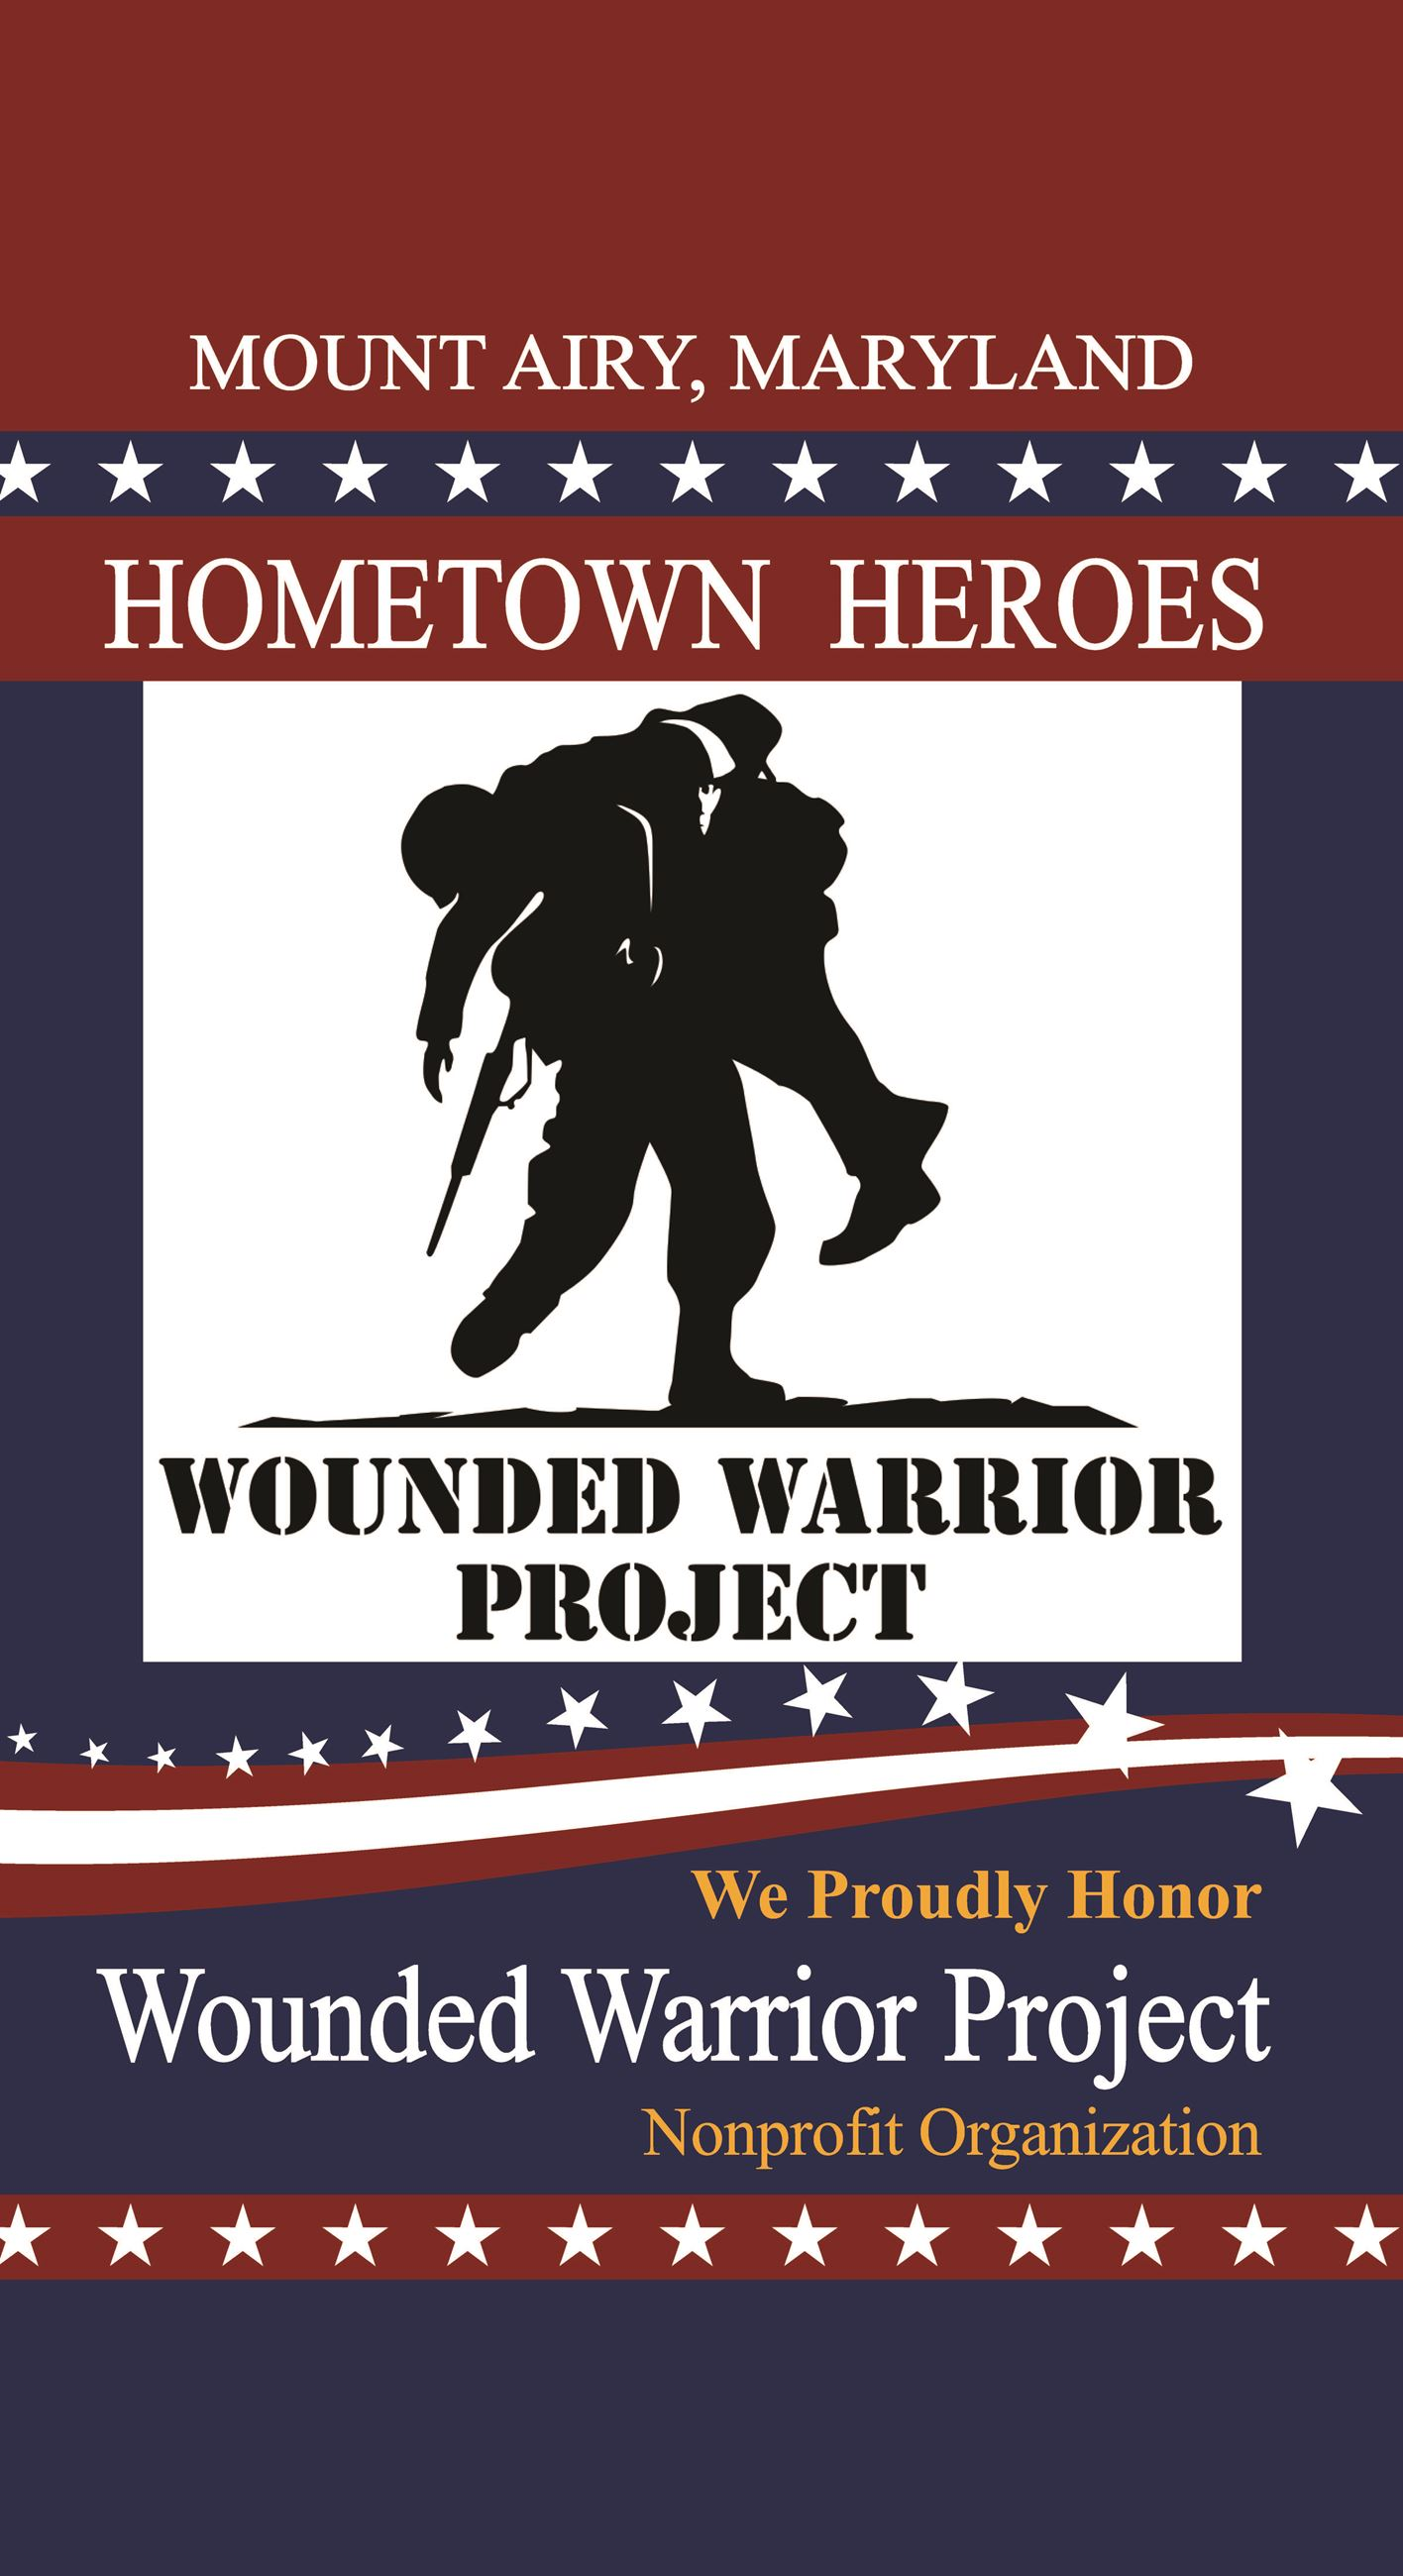 WoundedWarriorProject_MtAiryHeroes-Flag-24x44-Proof001